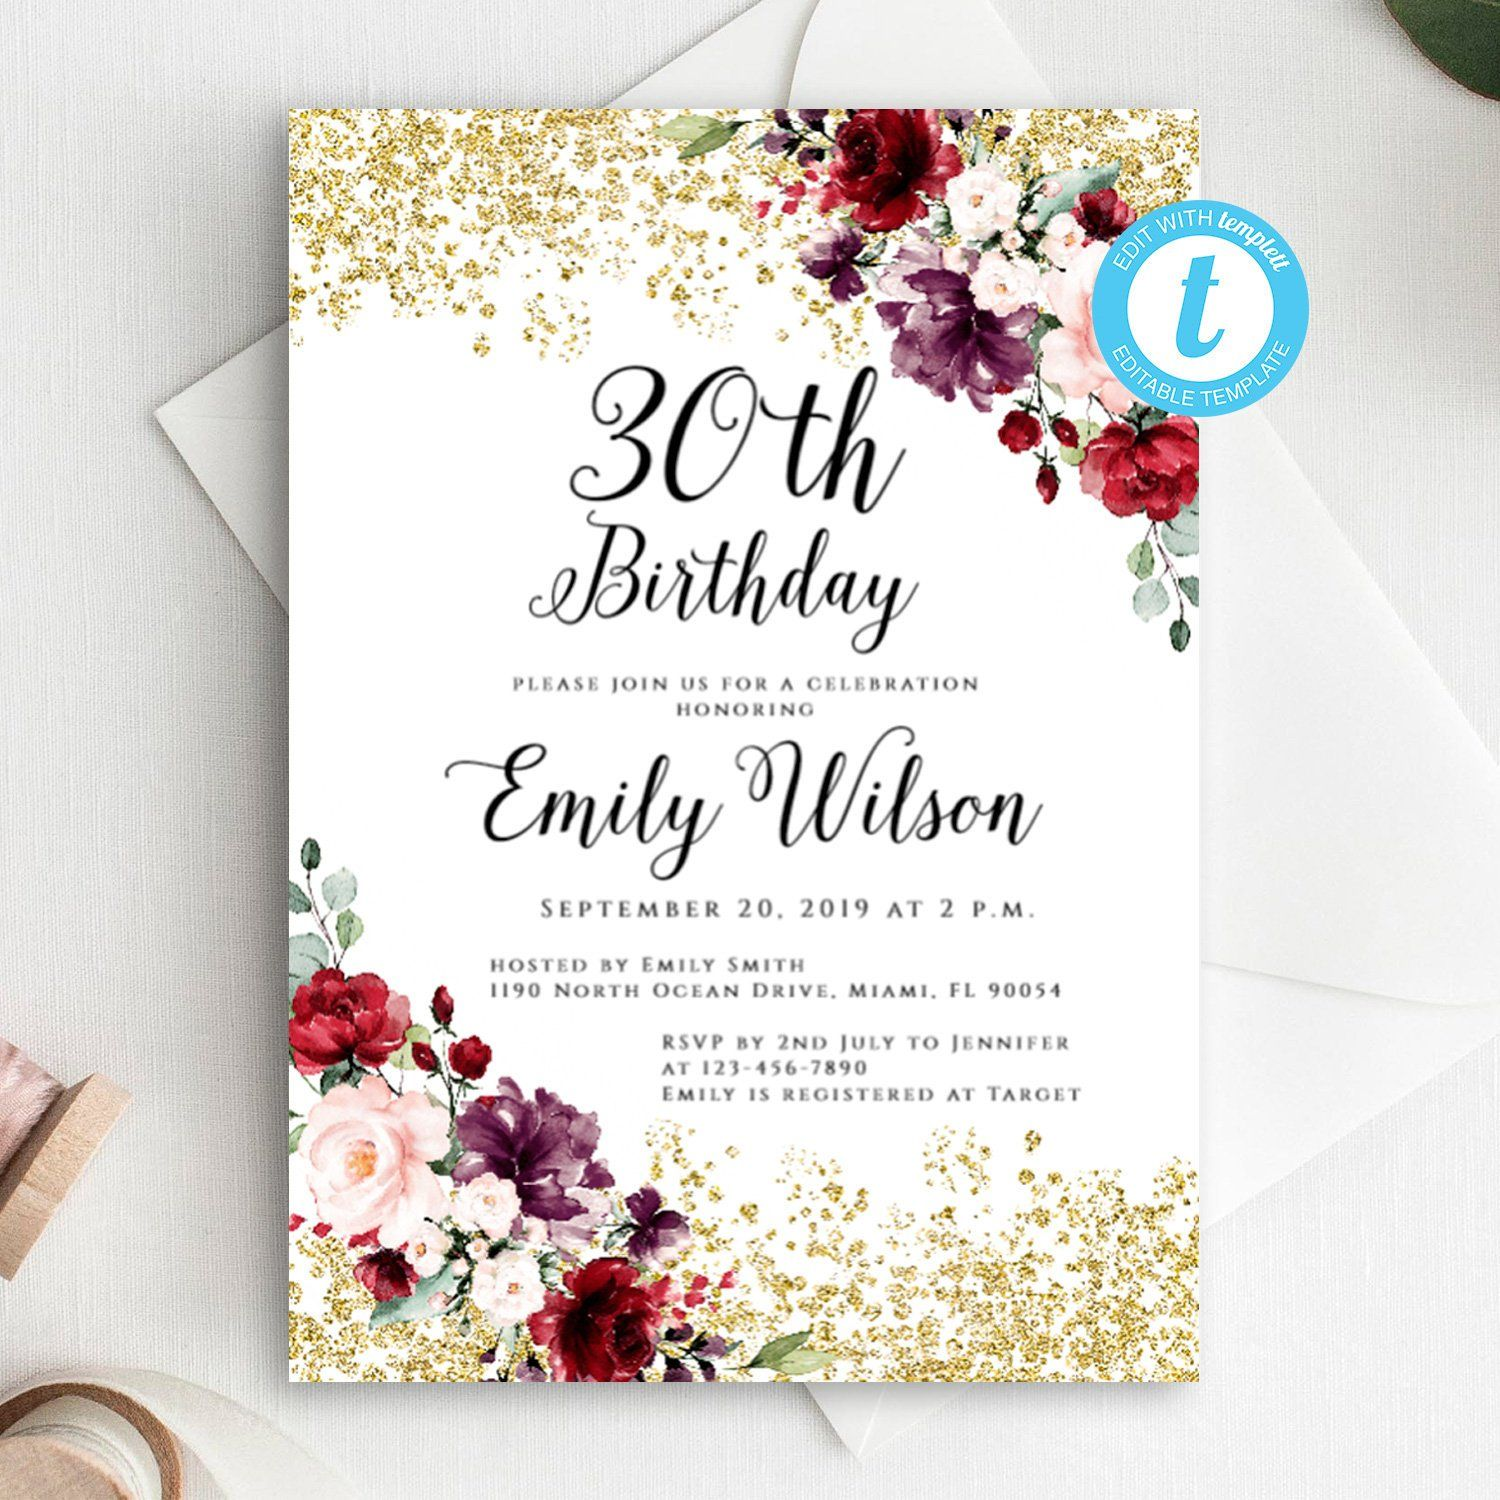 Marsala Glitter Birthday Invitation Editable Template 30th Adult Printable Templett